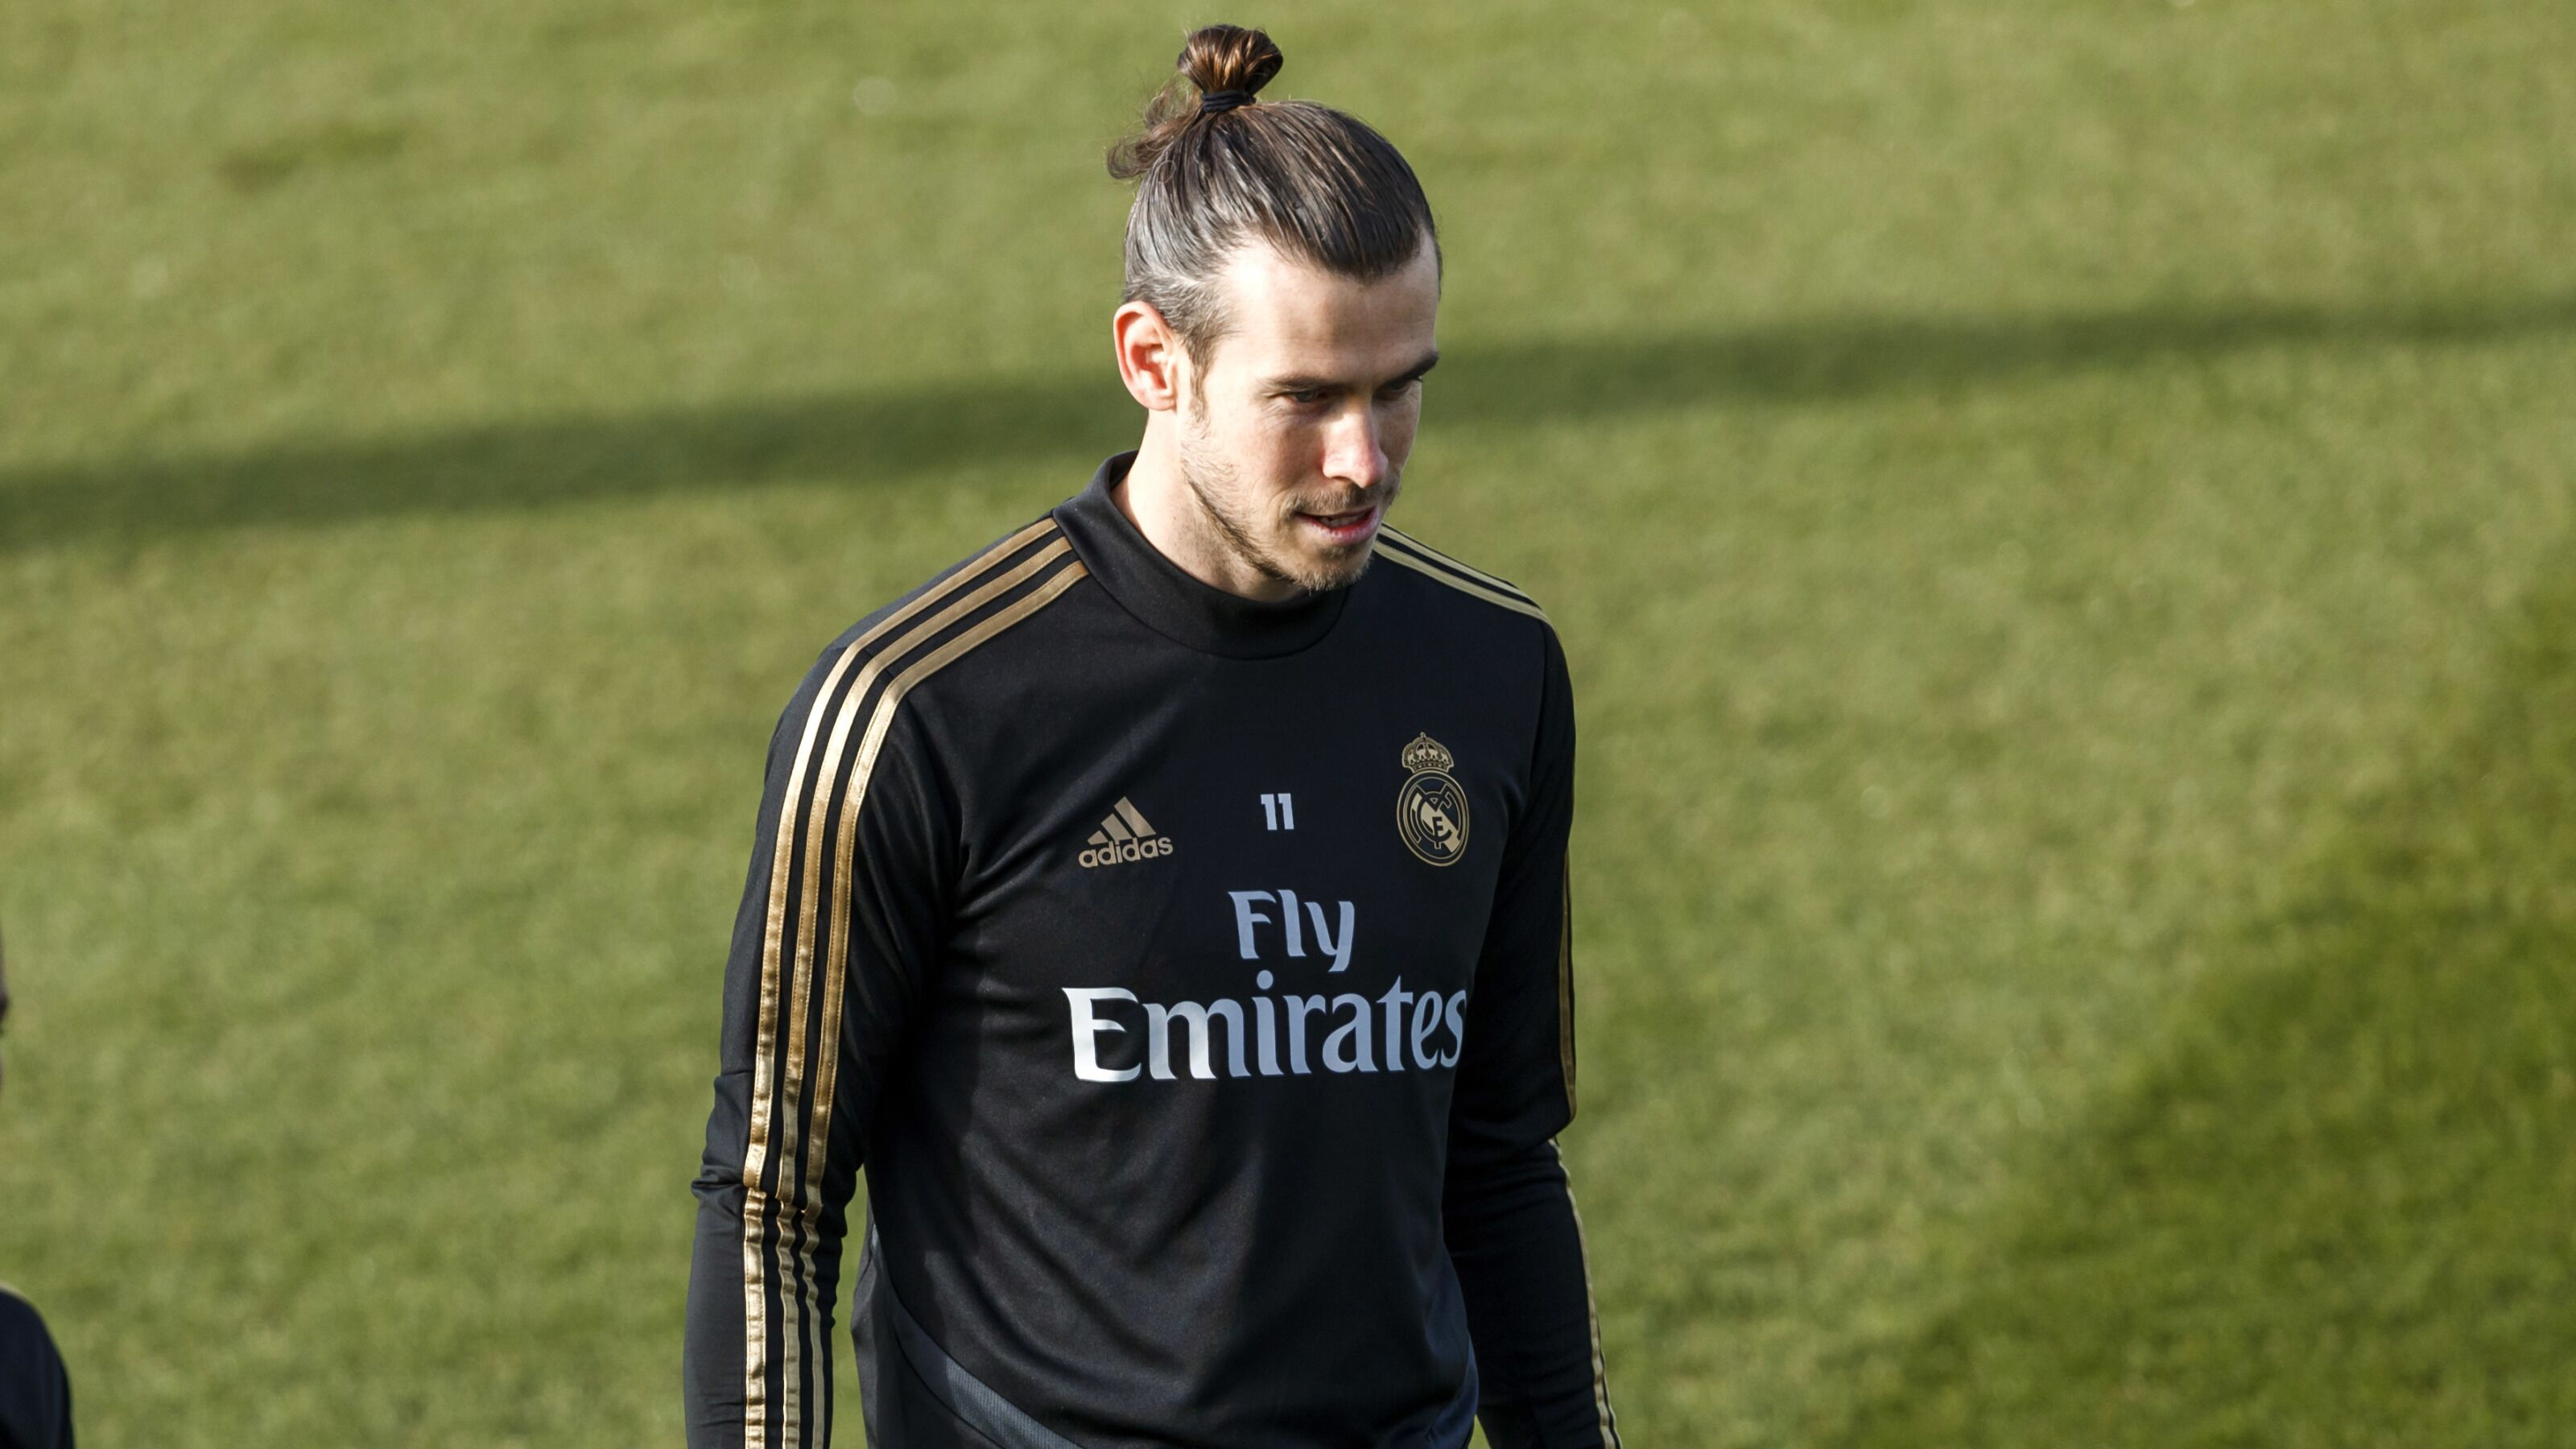 Real Madrid face difficulties yet again in trying to sell Gareth Bale